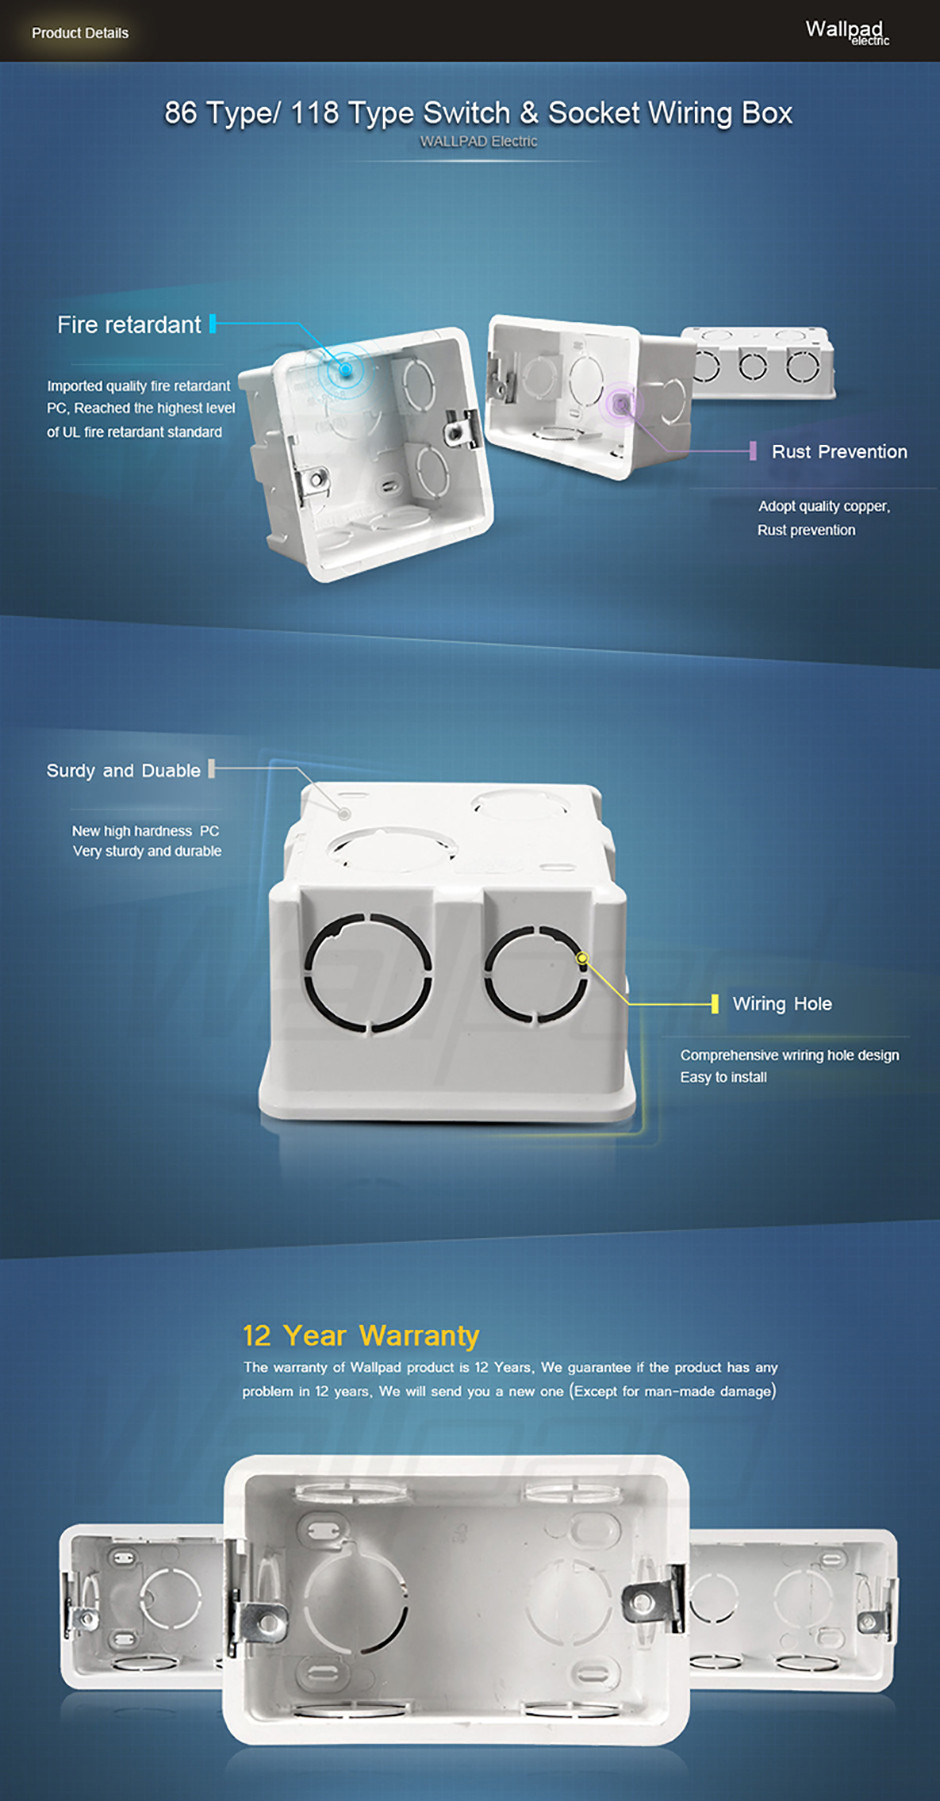 Plastic Wall Plate Mount Junction Box Type 86 Switch Cassette Acrylic Wiring 10 Getsubject Aeproductgetsubject